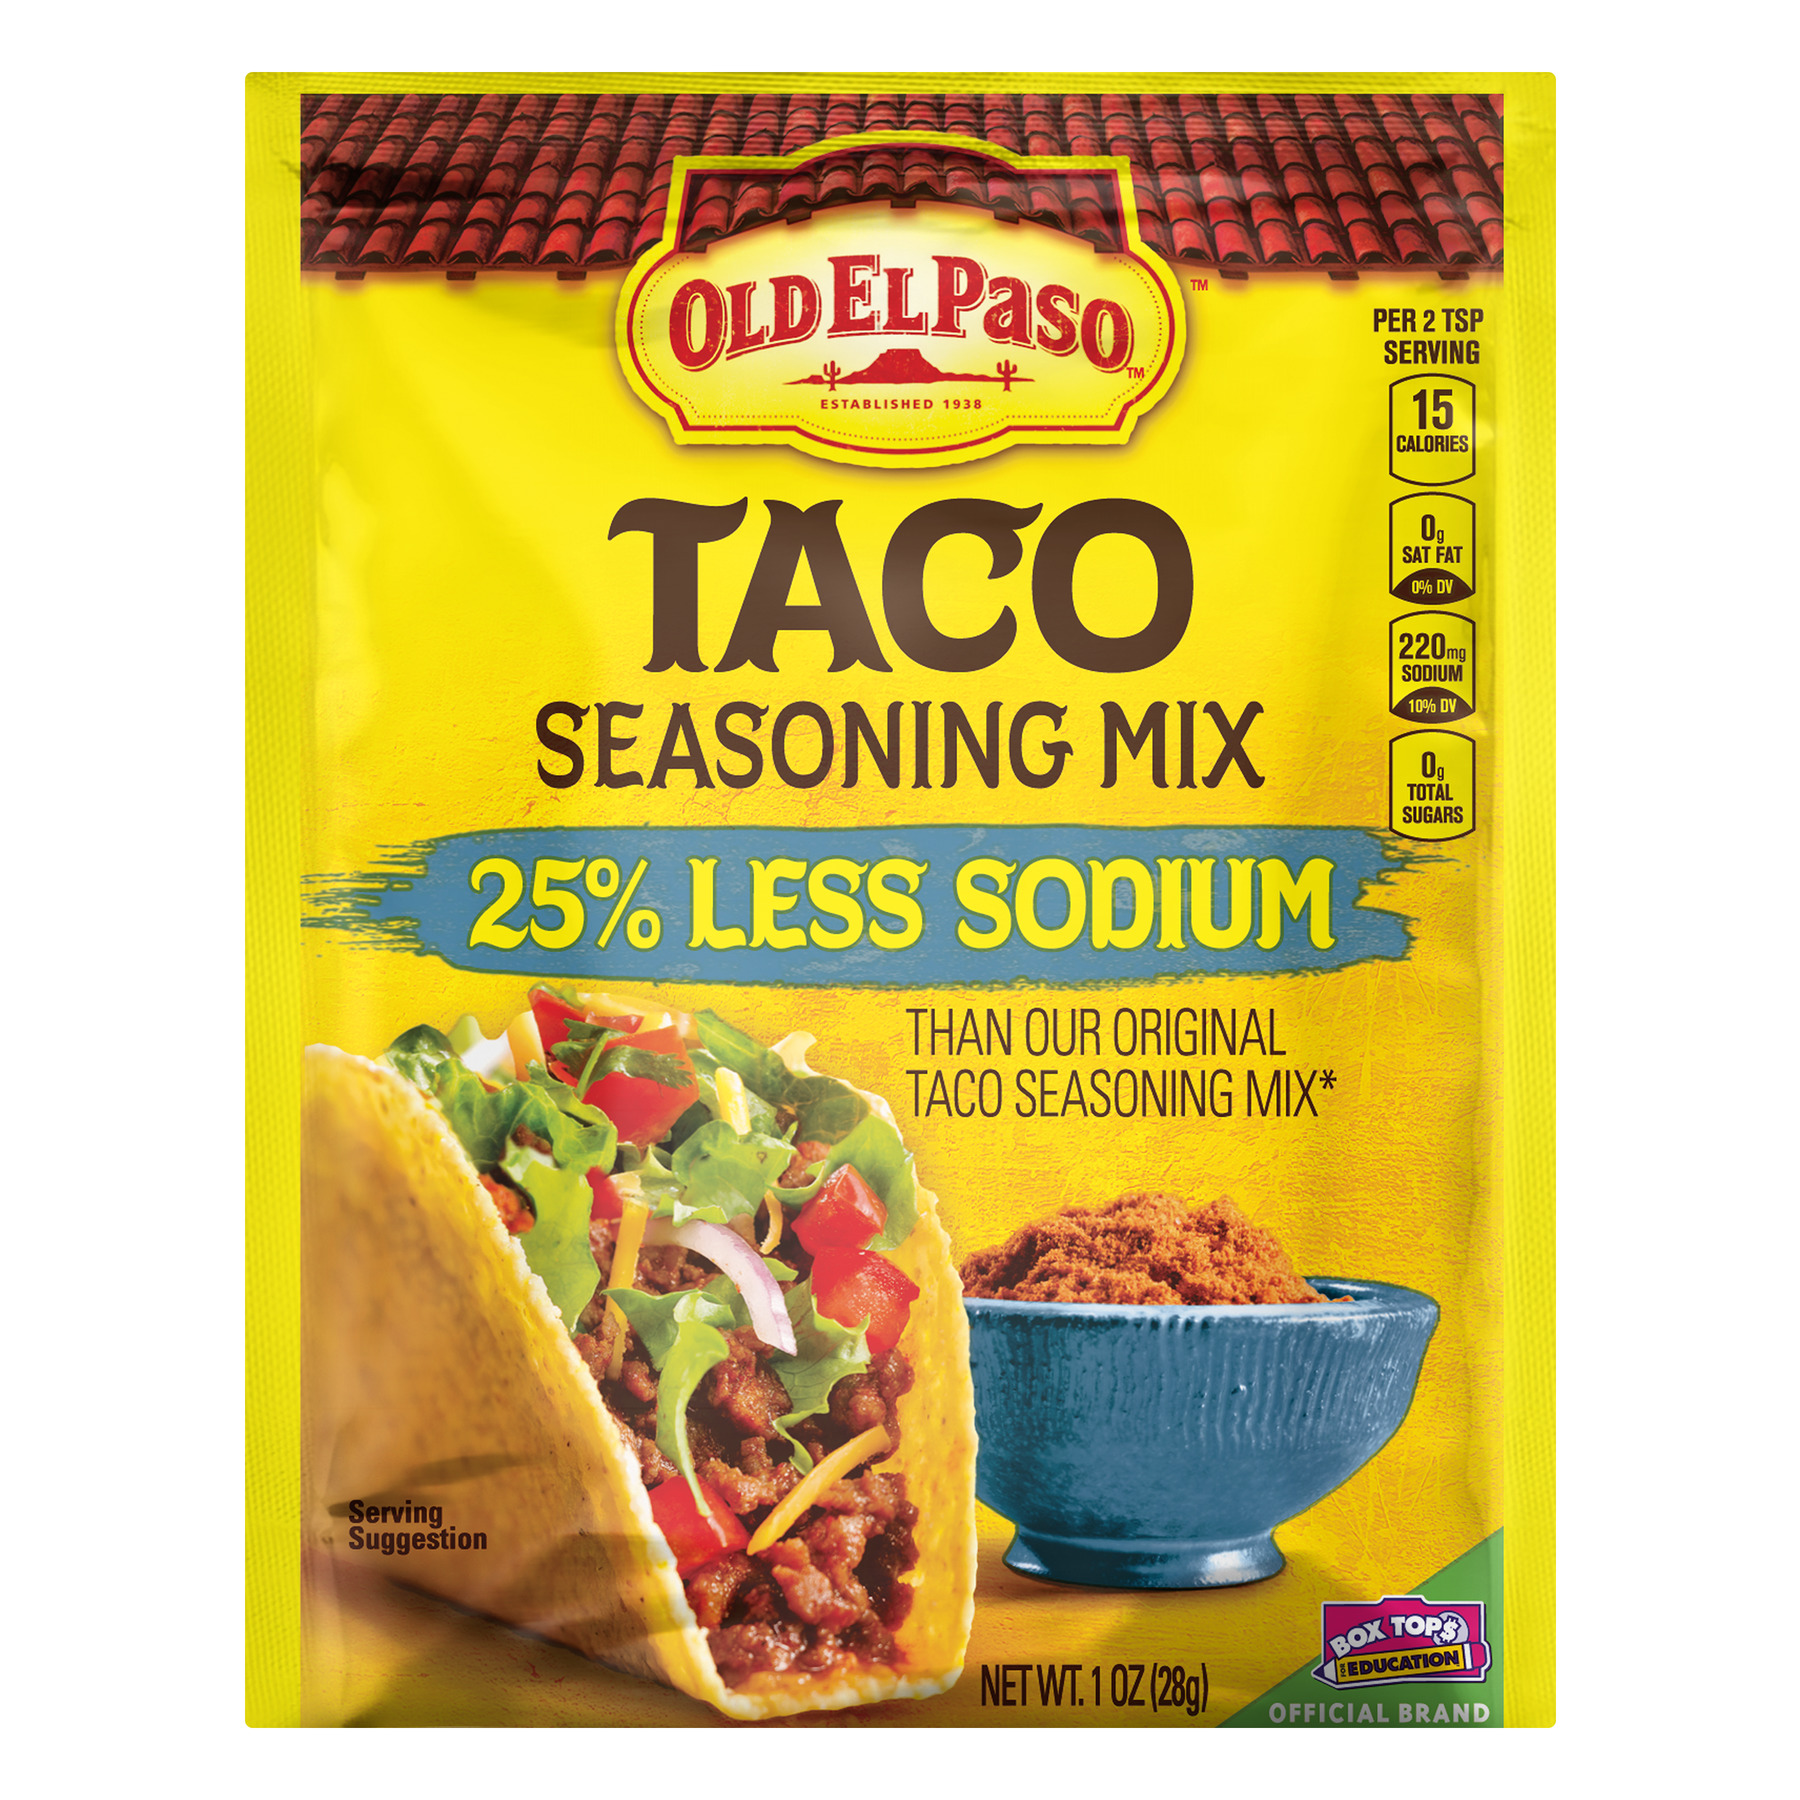 Old El Paso Taco 25% Less Sodium Seasoning Mix, 1 oz